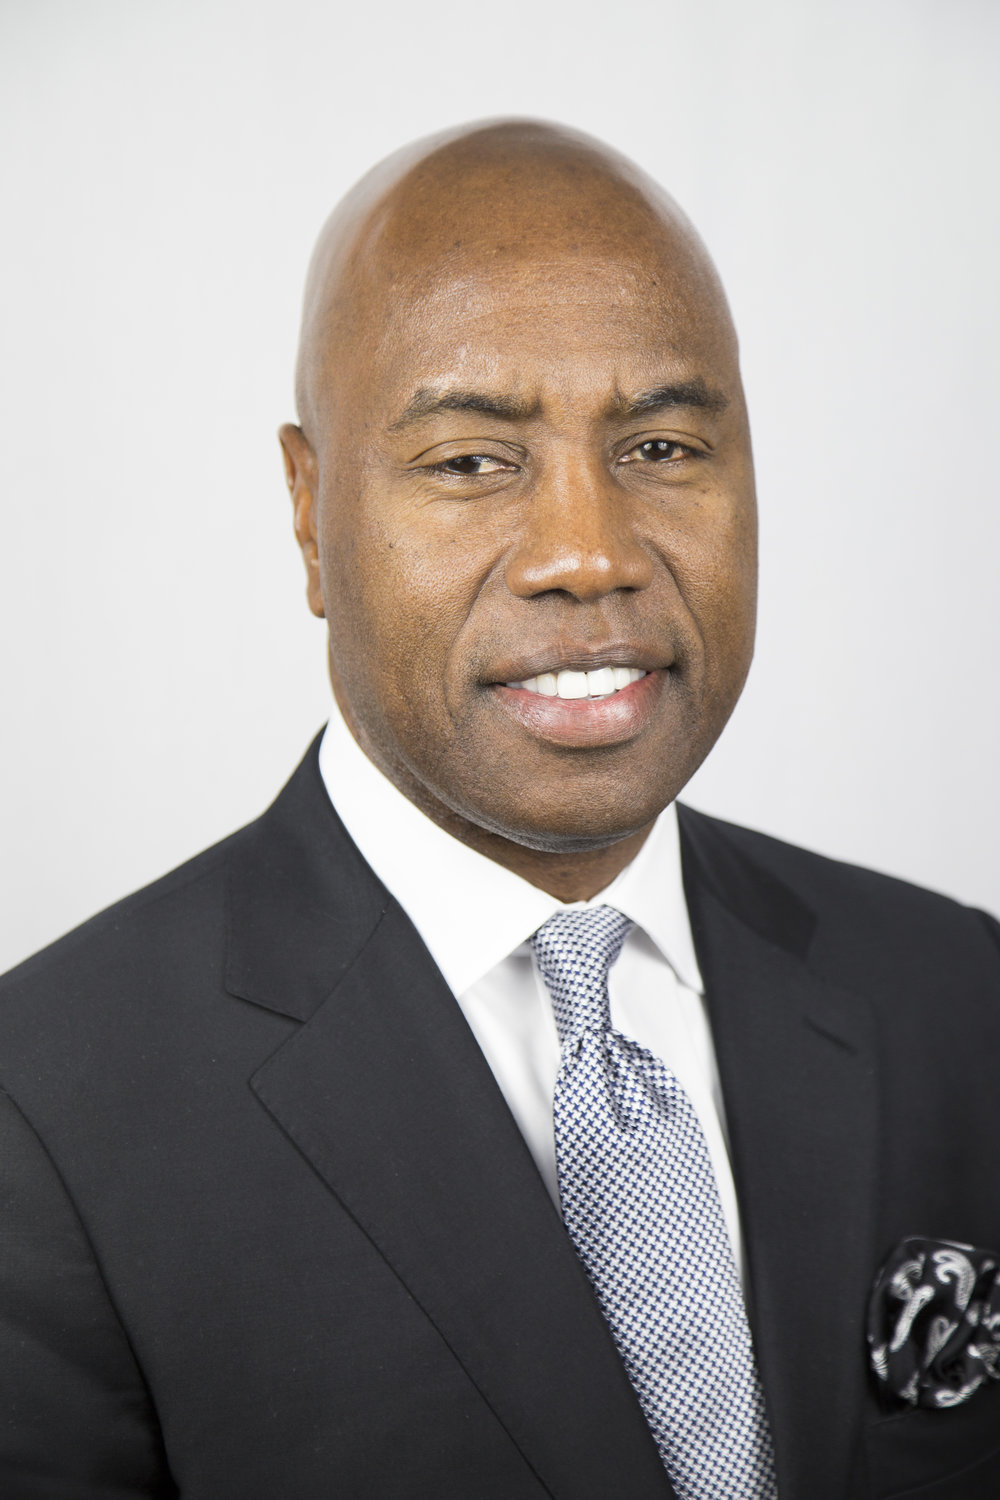 Alvin Smith - CEO & FOUNDER